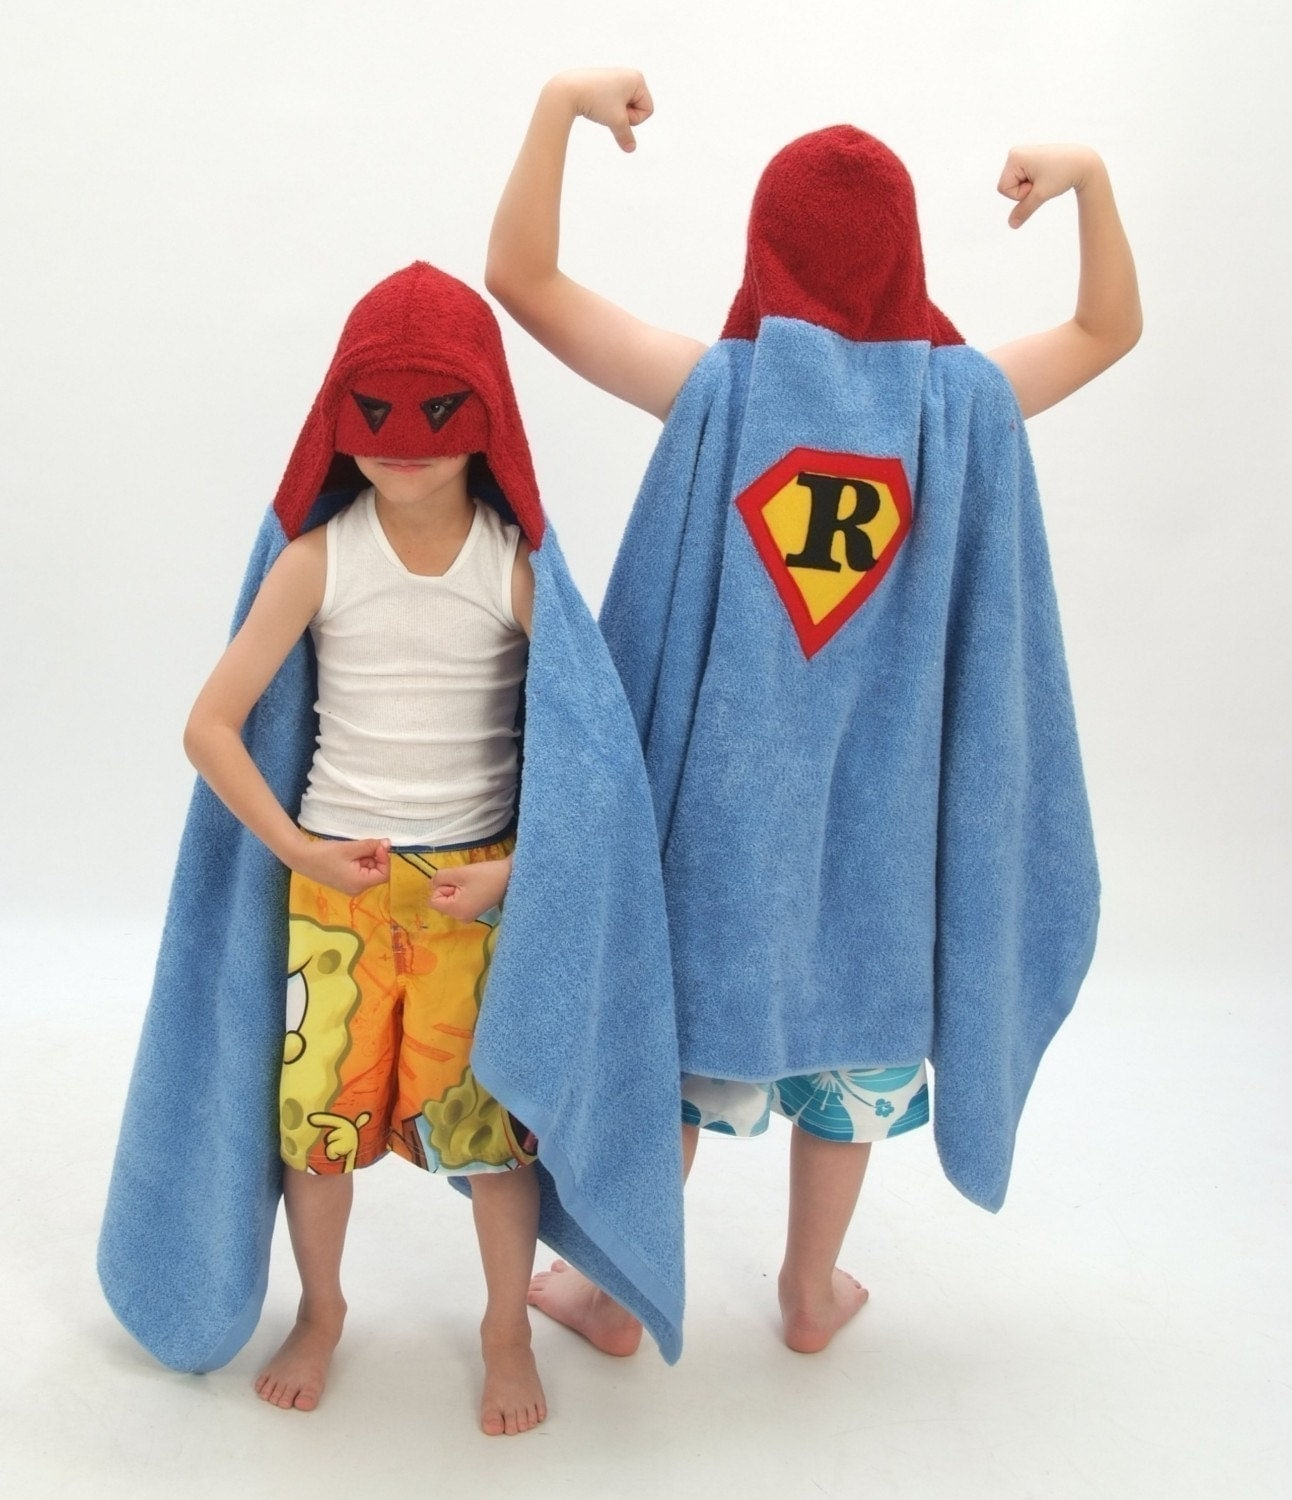 Personalized Superhero towel